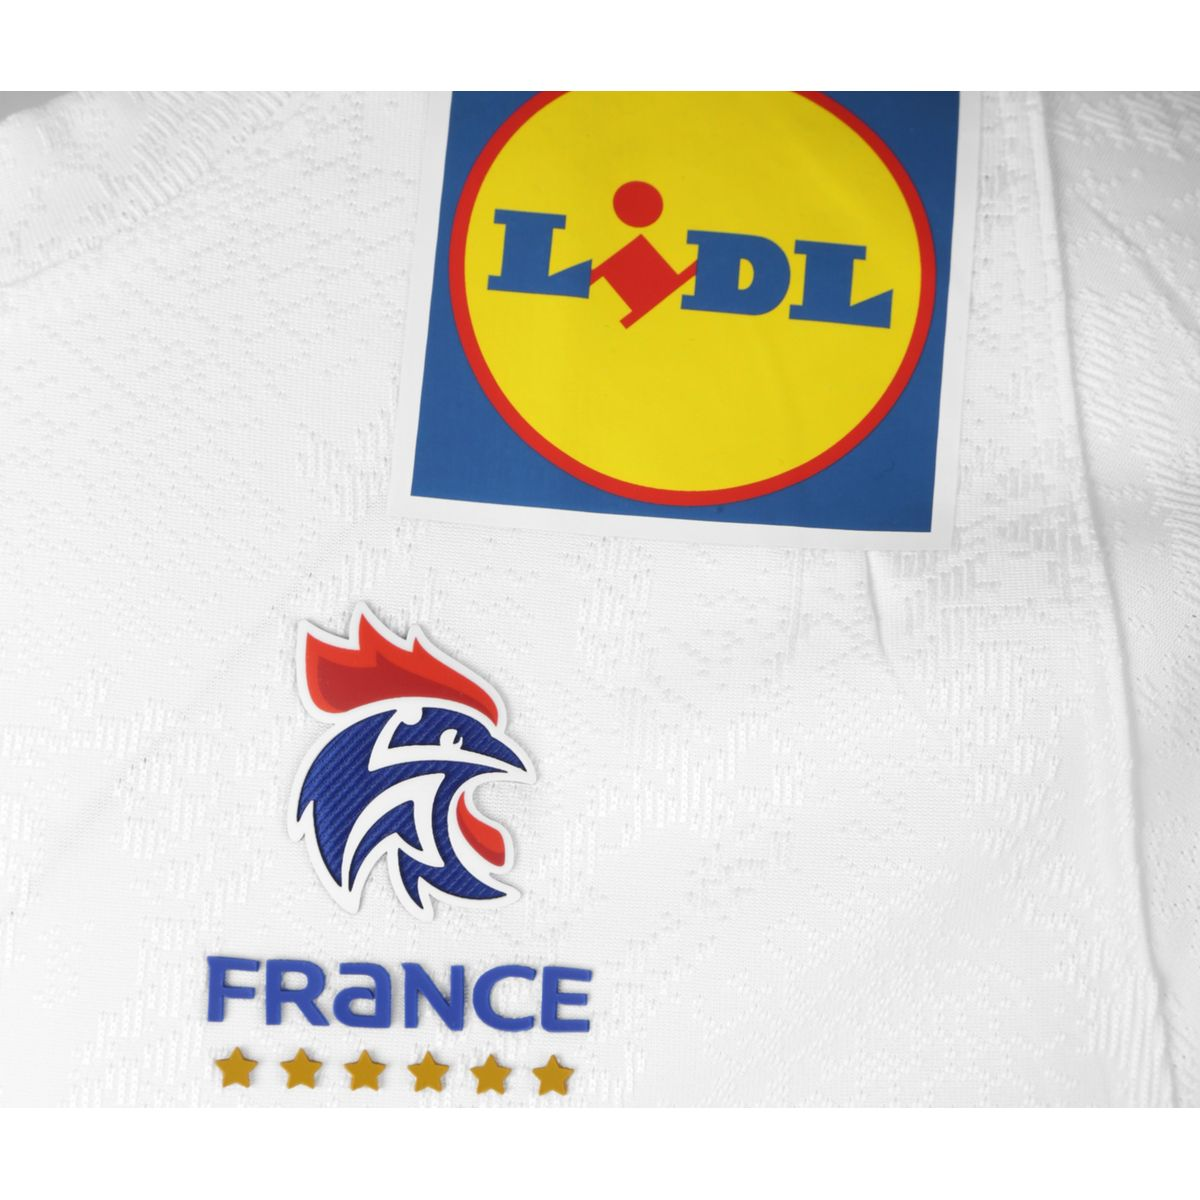 Maillot Handball France Ffhb Extérieur 201819 Taille : L